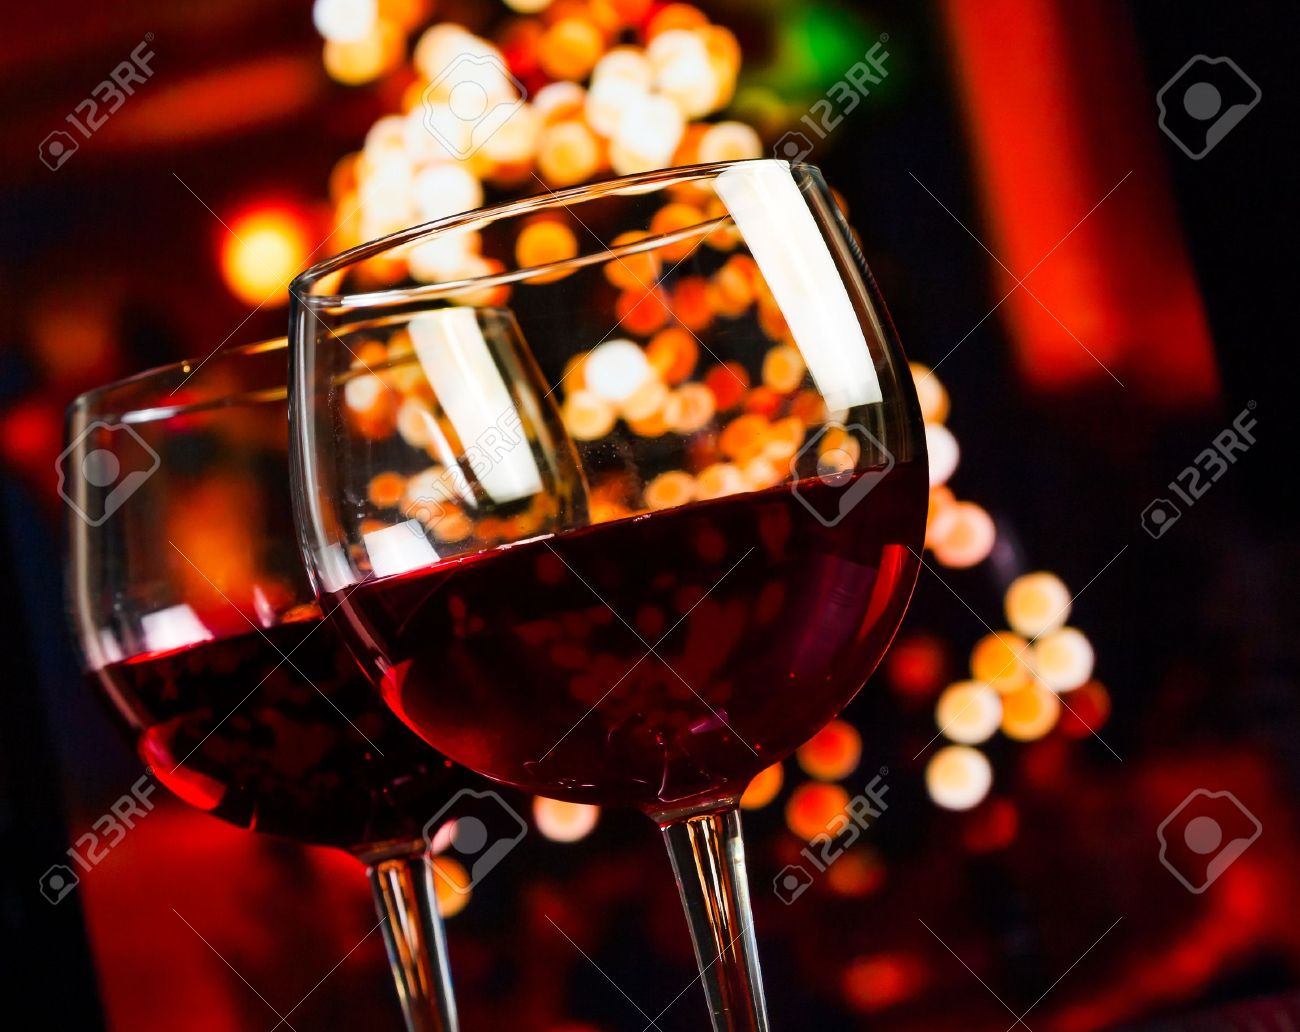 two red wine glass against christmas lights decoration background, christmas atmosphere - 33524423